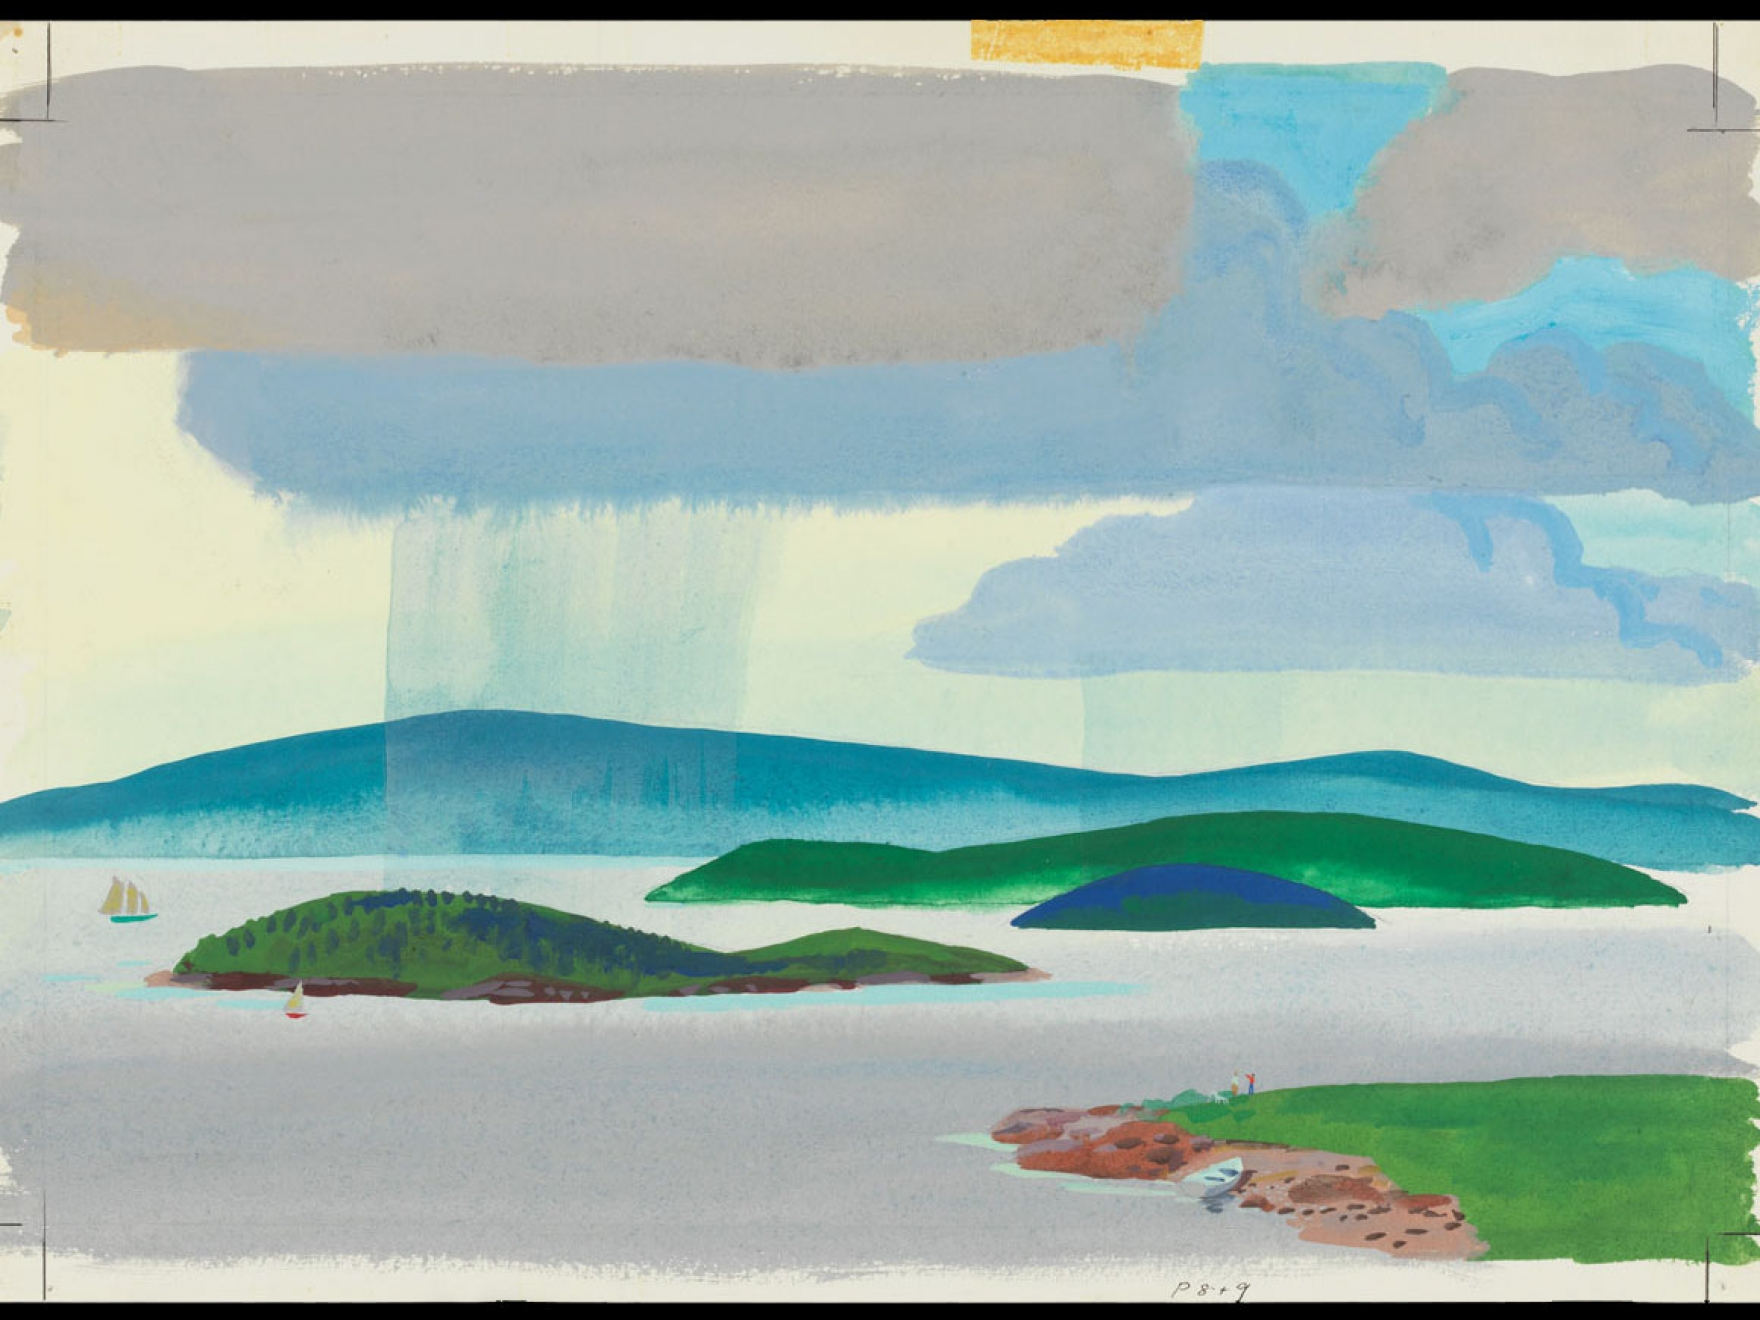 """Robert McCloskey's watercolor for Time of Wonder ("""". . . you, on your island are standing in the shadow, watching the rain begin to spill down way across the bay,"""")"""